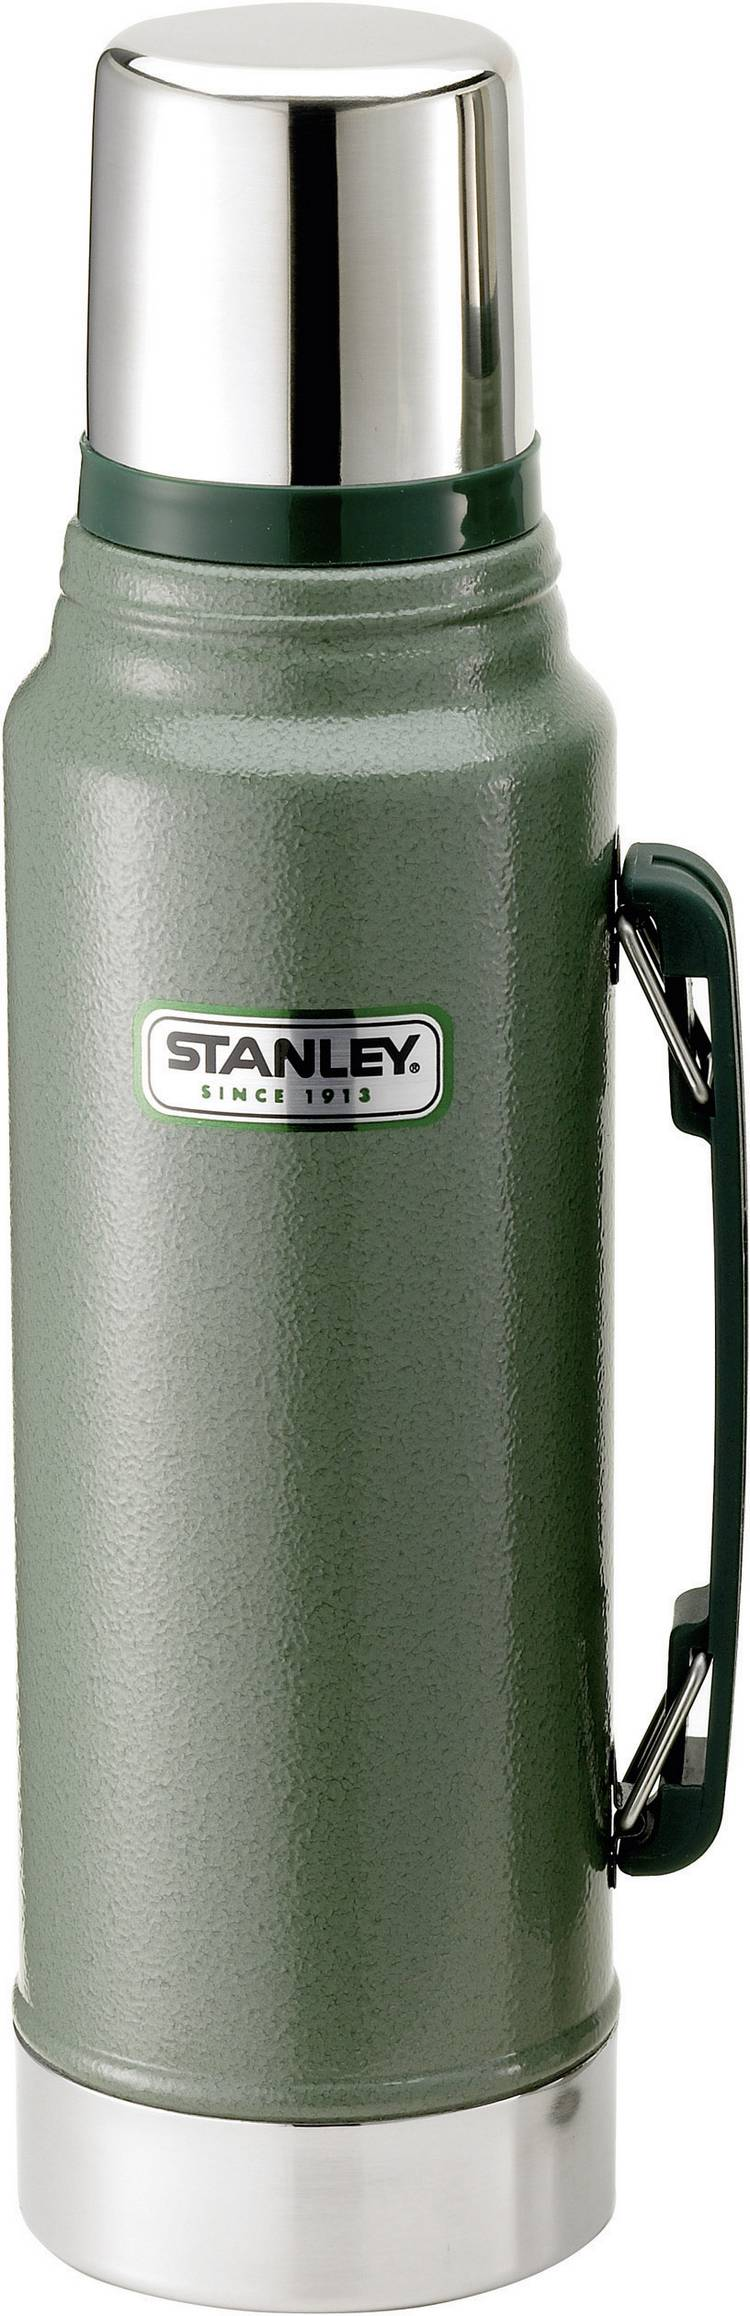 Stanley 10-01032-001 Thermosfles Groen 1000 ml